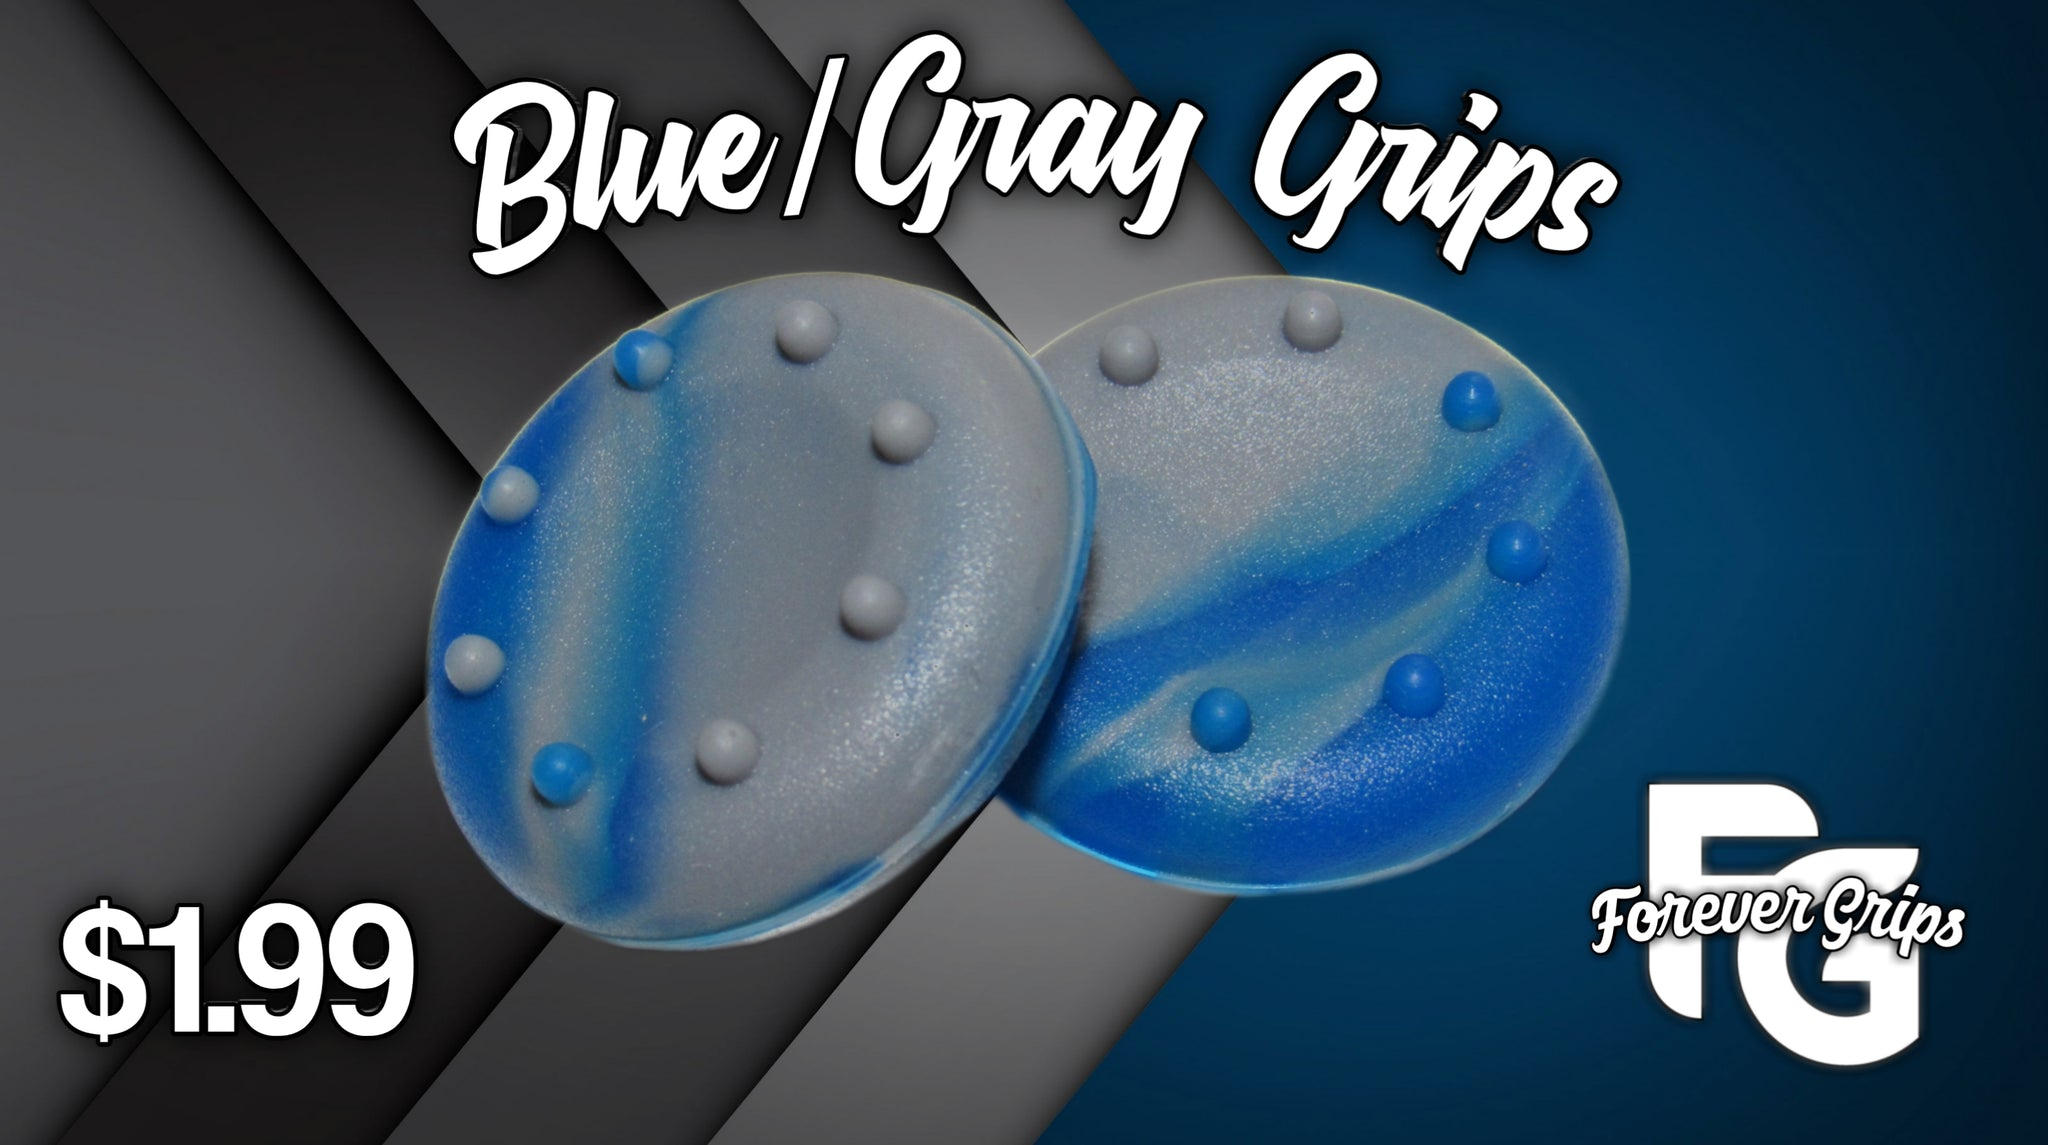 Blue/Gray Grips